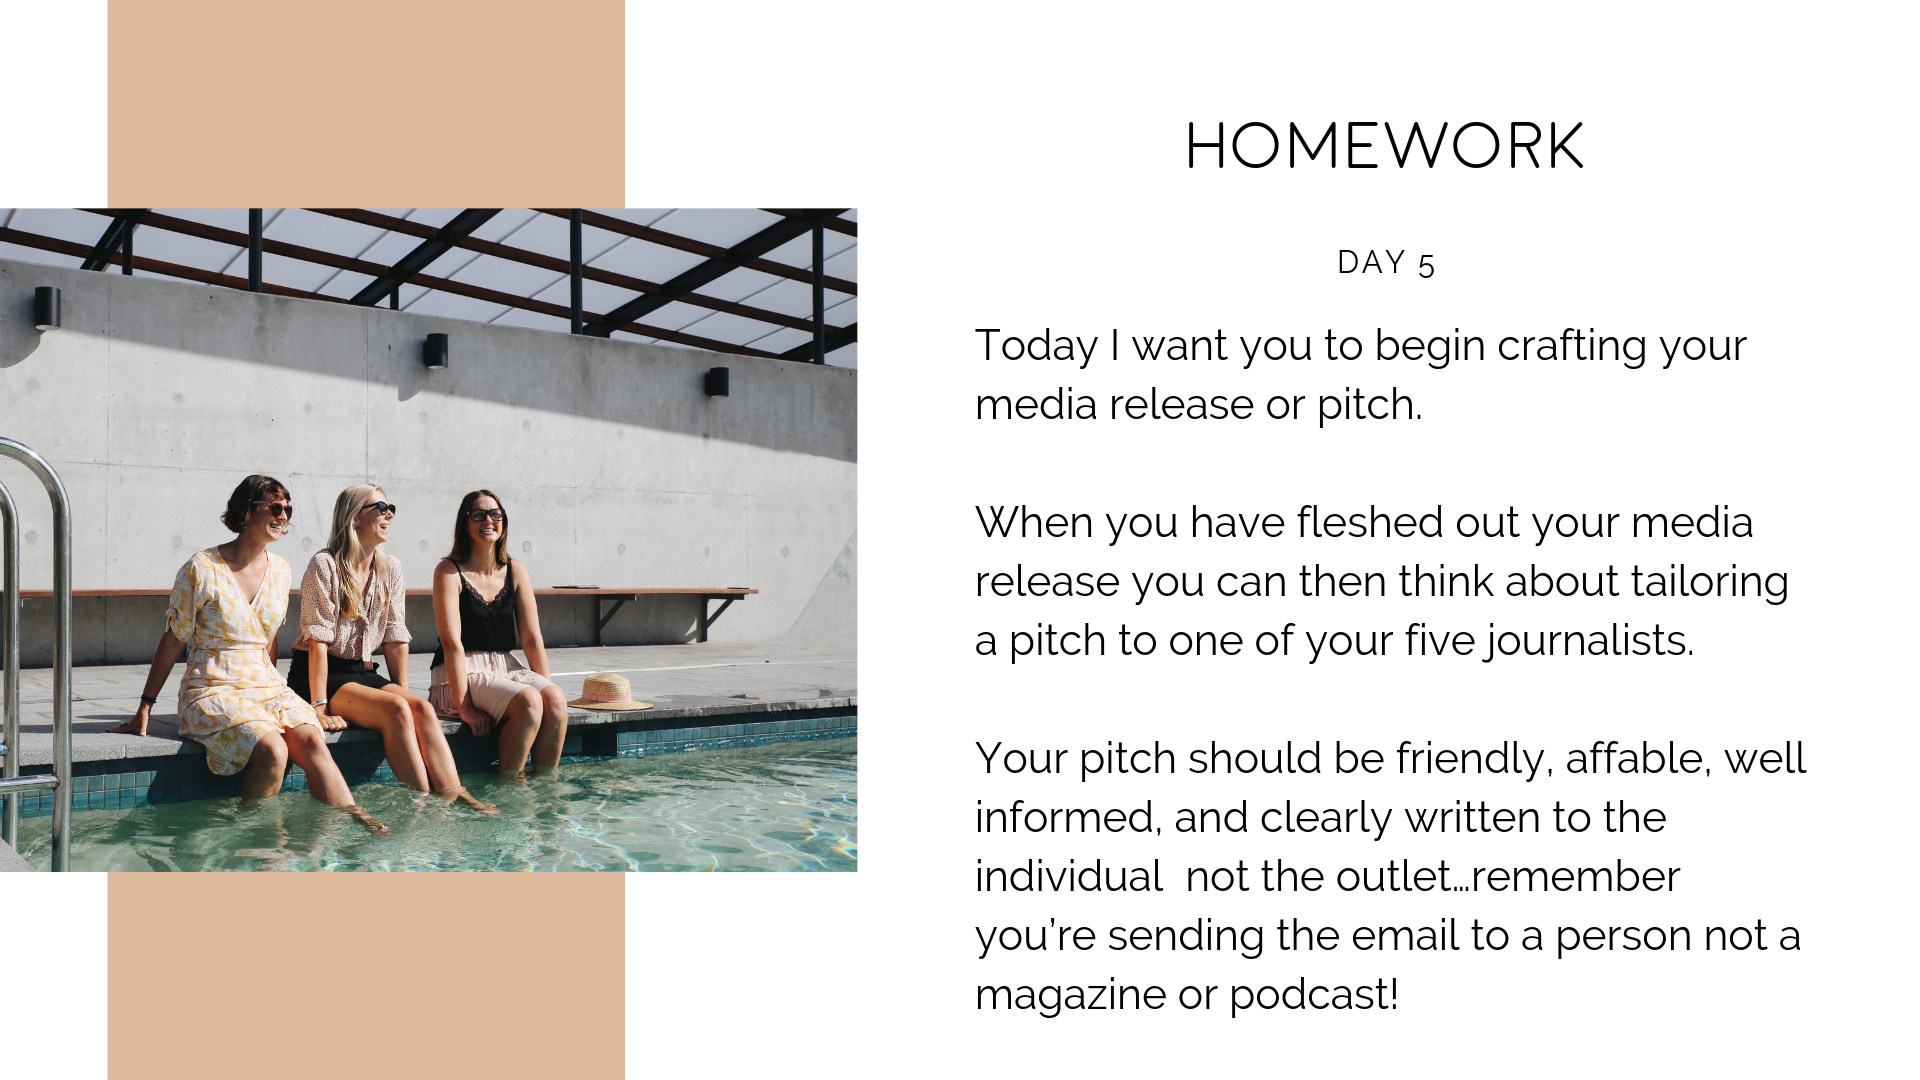 How to DIY your PR - media release and pitch writing homework